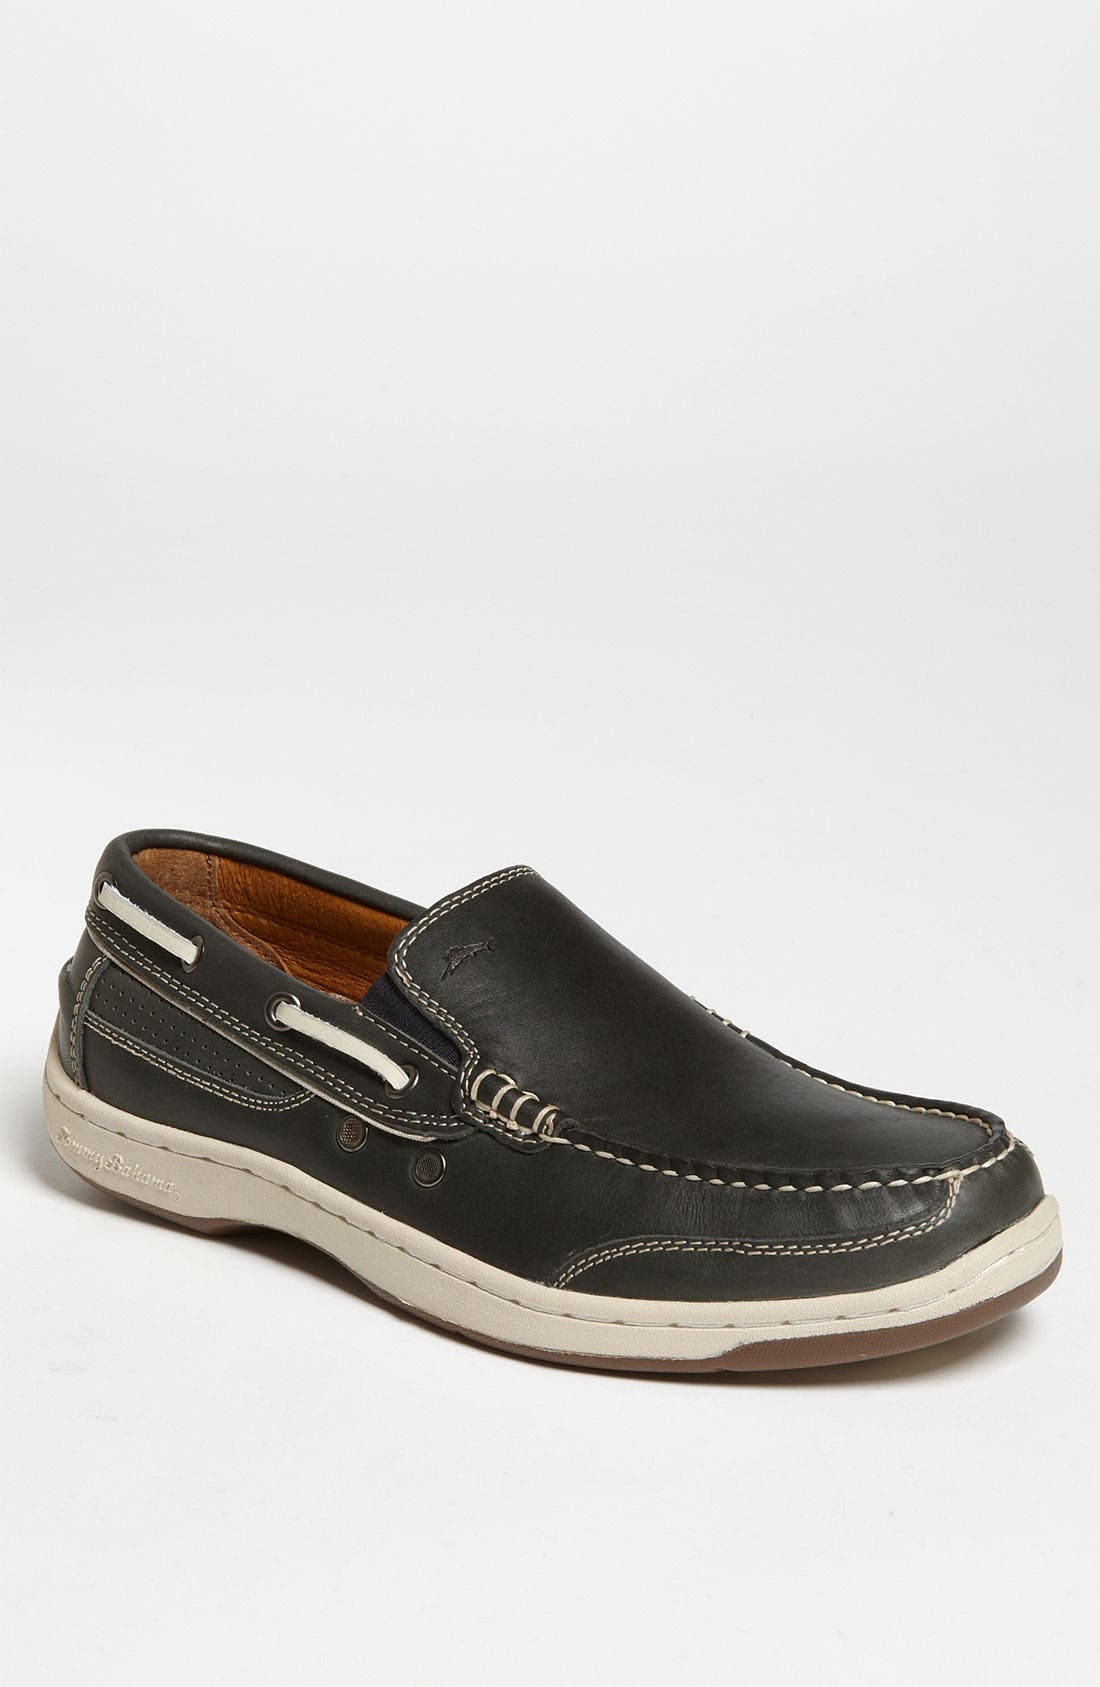 Main Image - Tommy Bahama 'First Mate' Boat Shoe